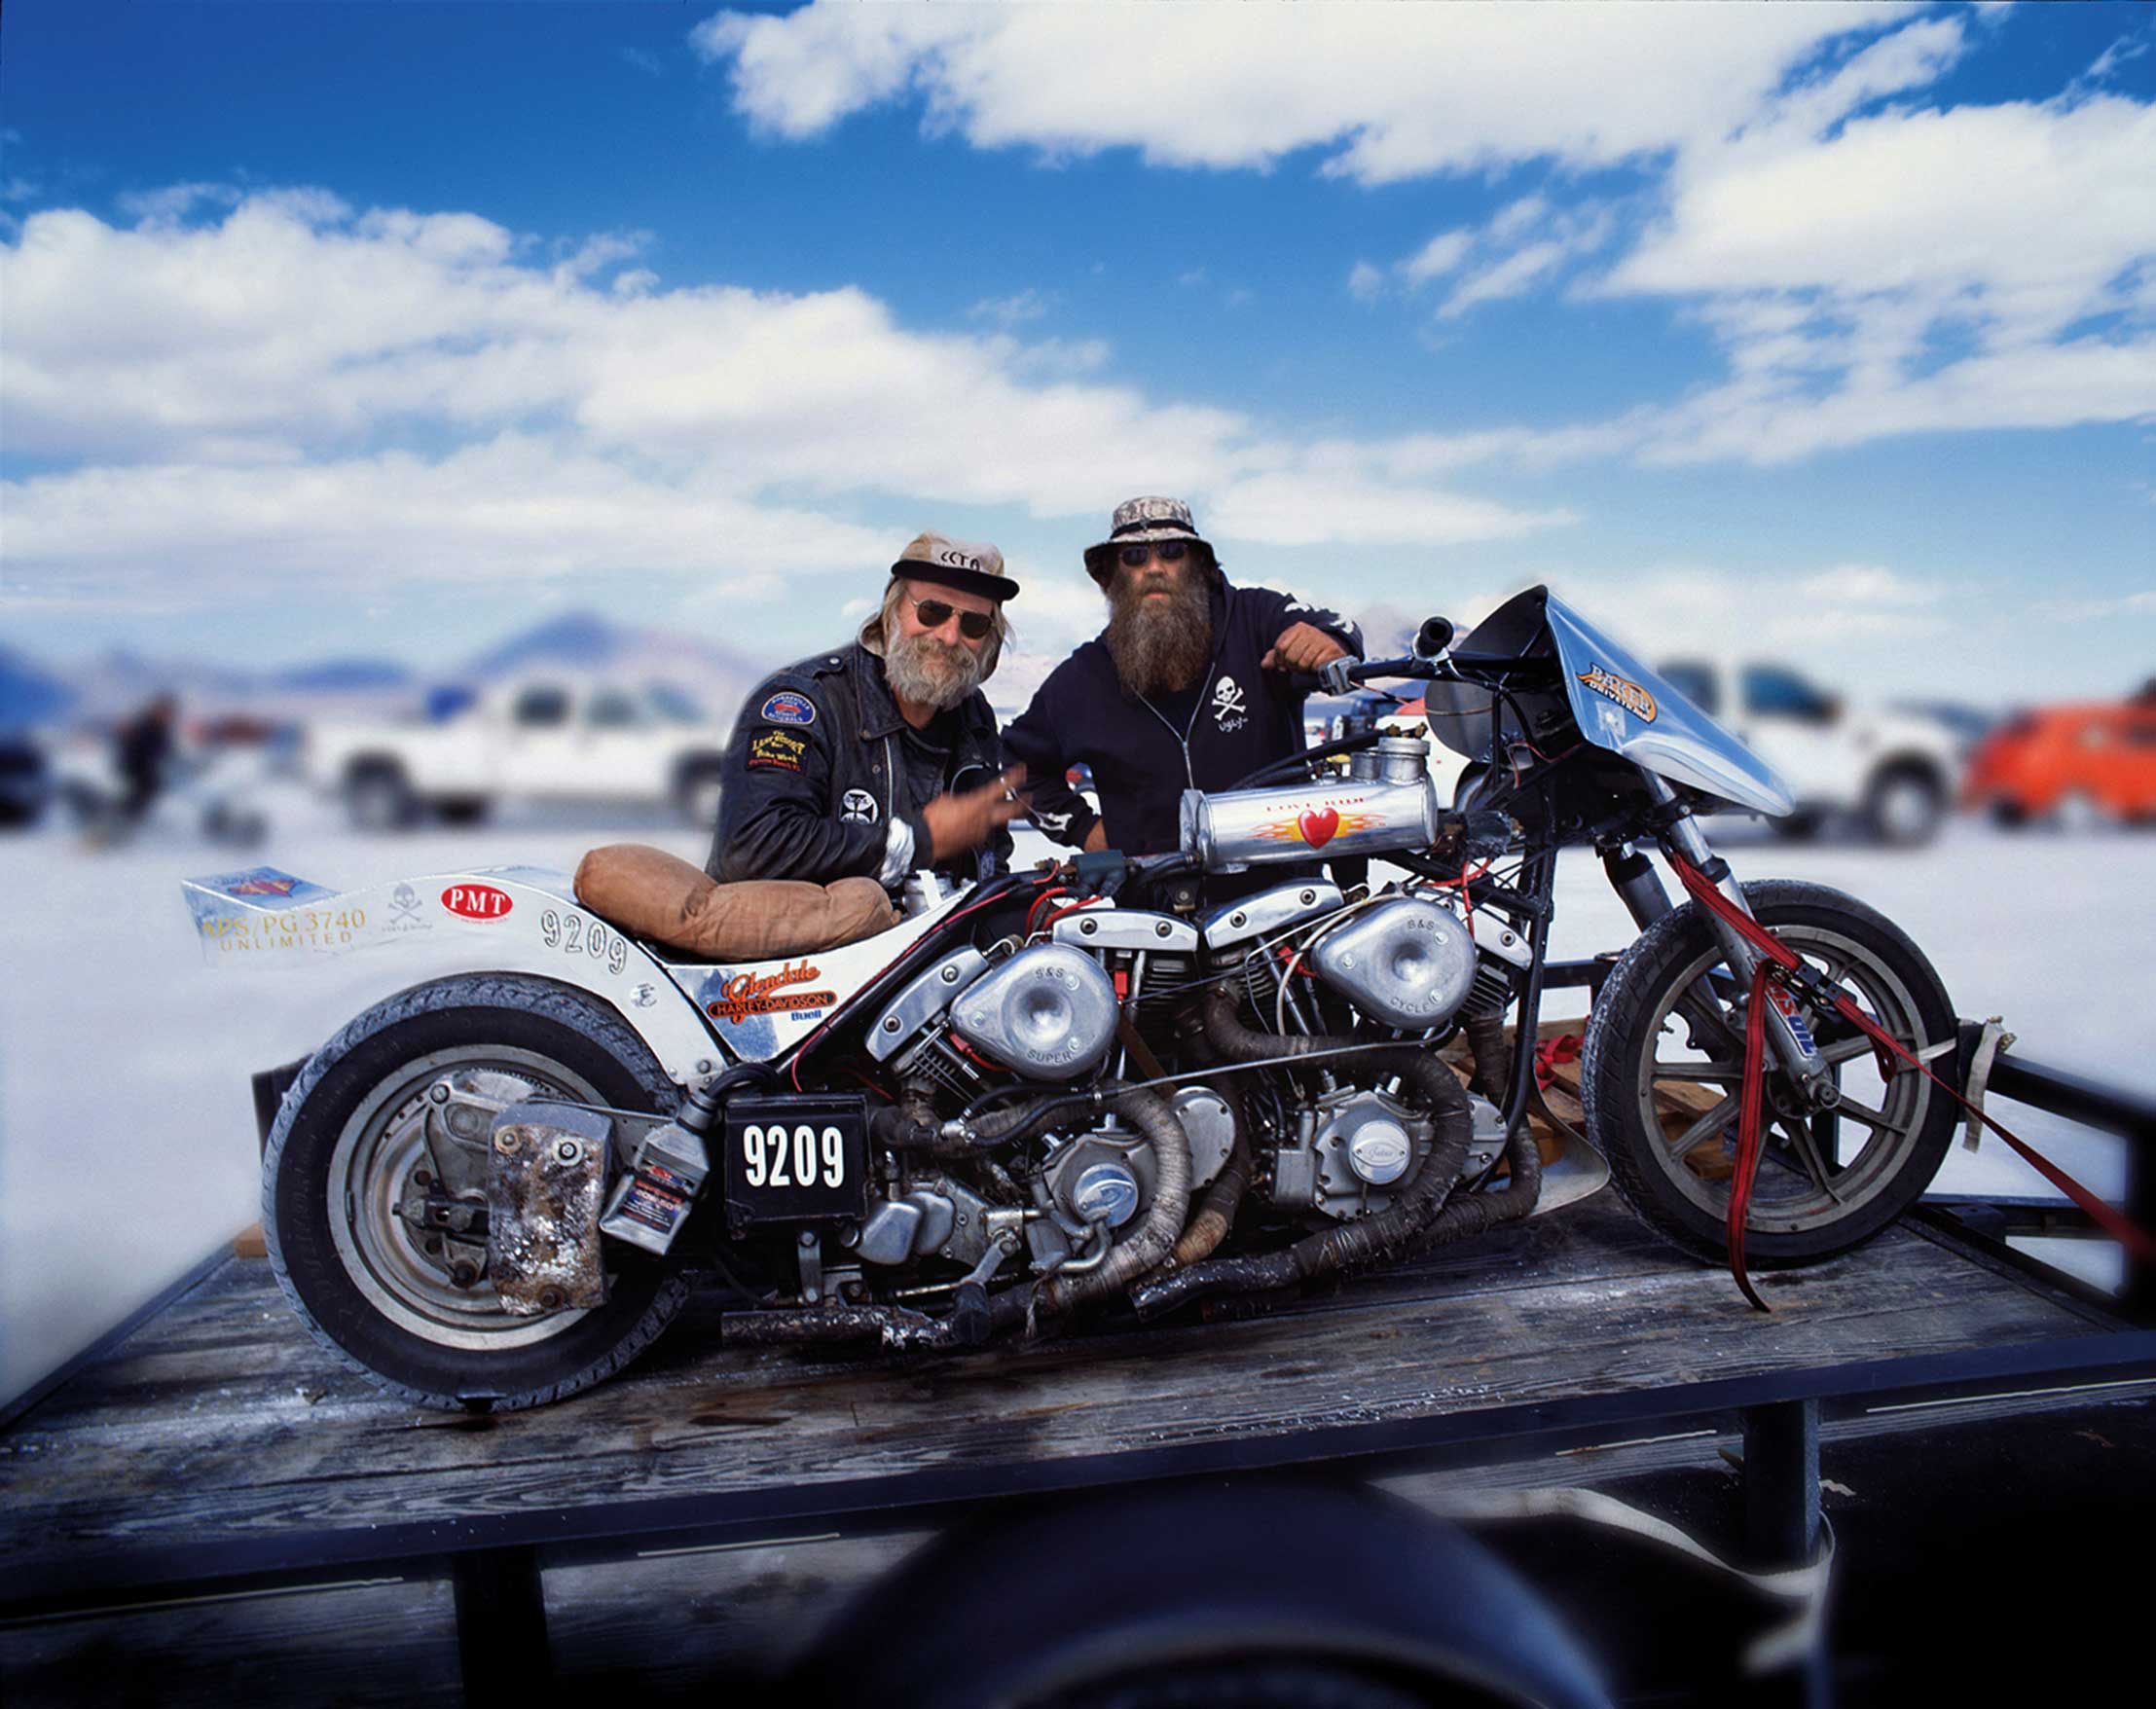 Harley Davidson UTAH Speed Week